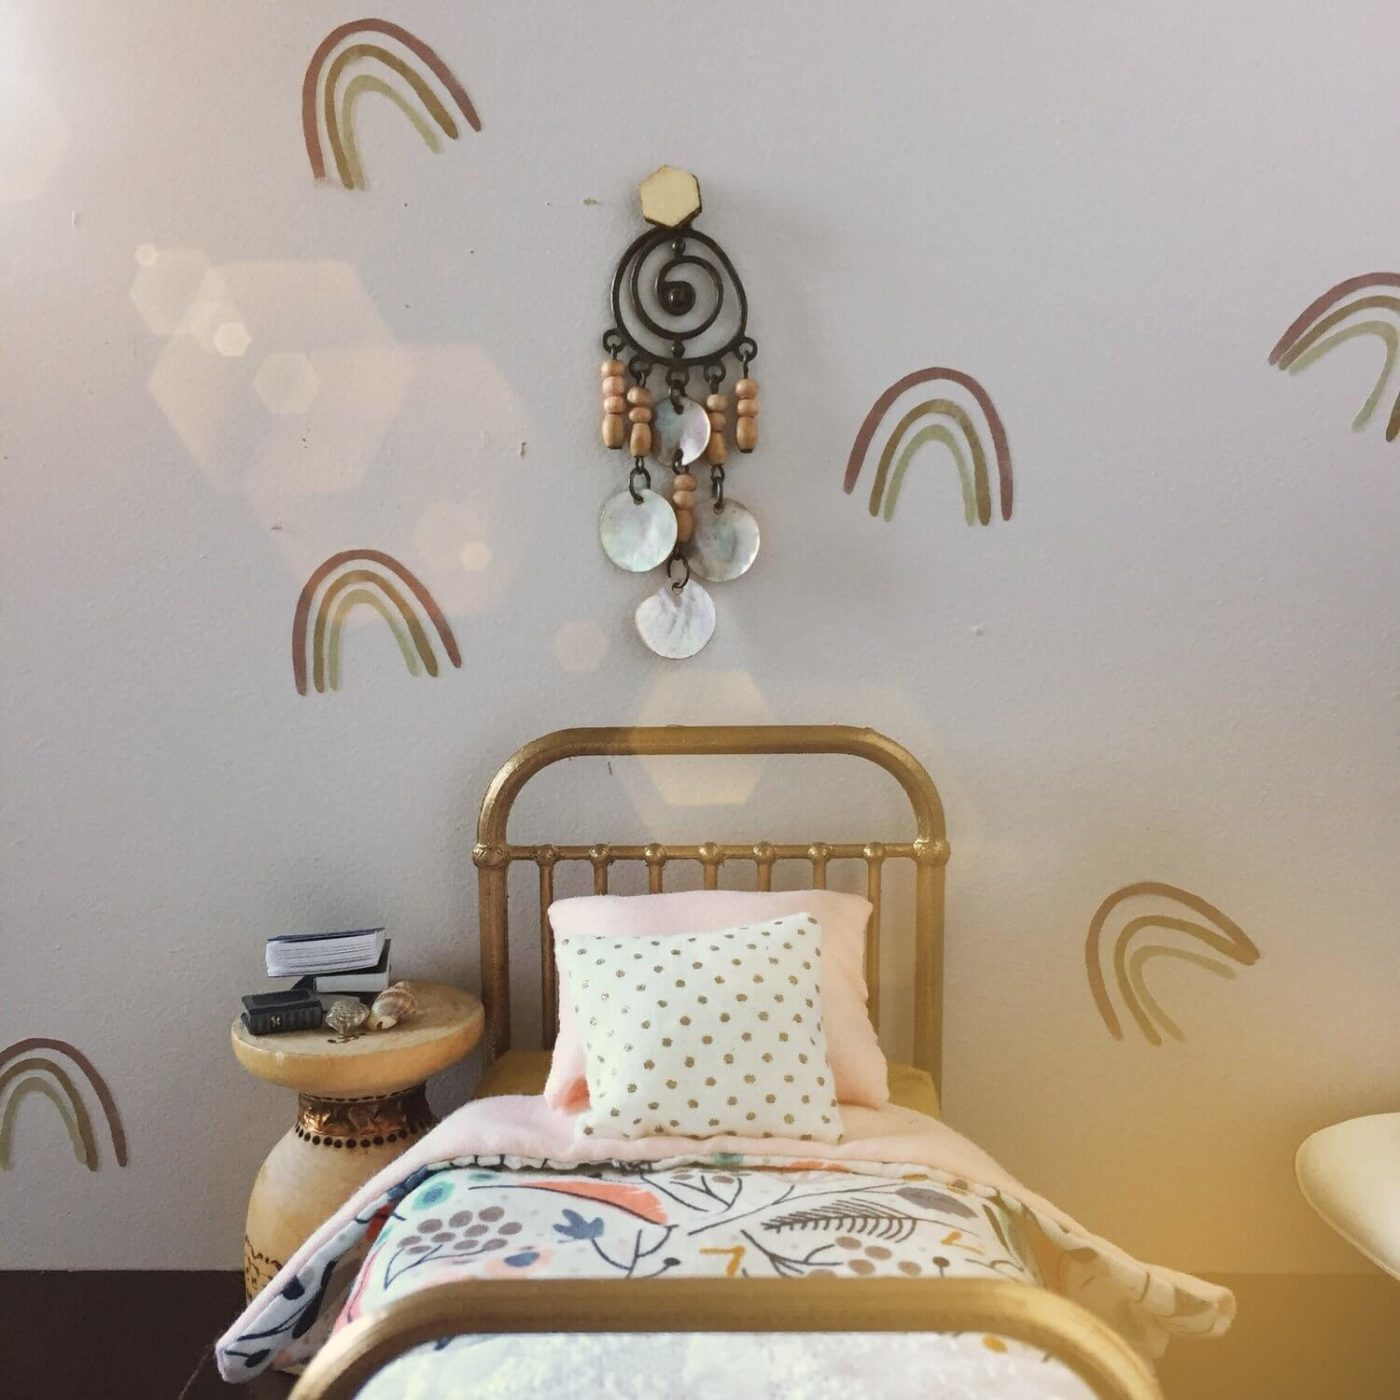 A close up of miniature rainbow wall decals in a doll's house.